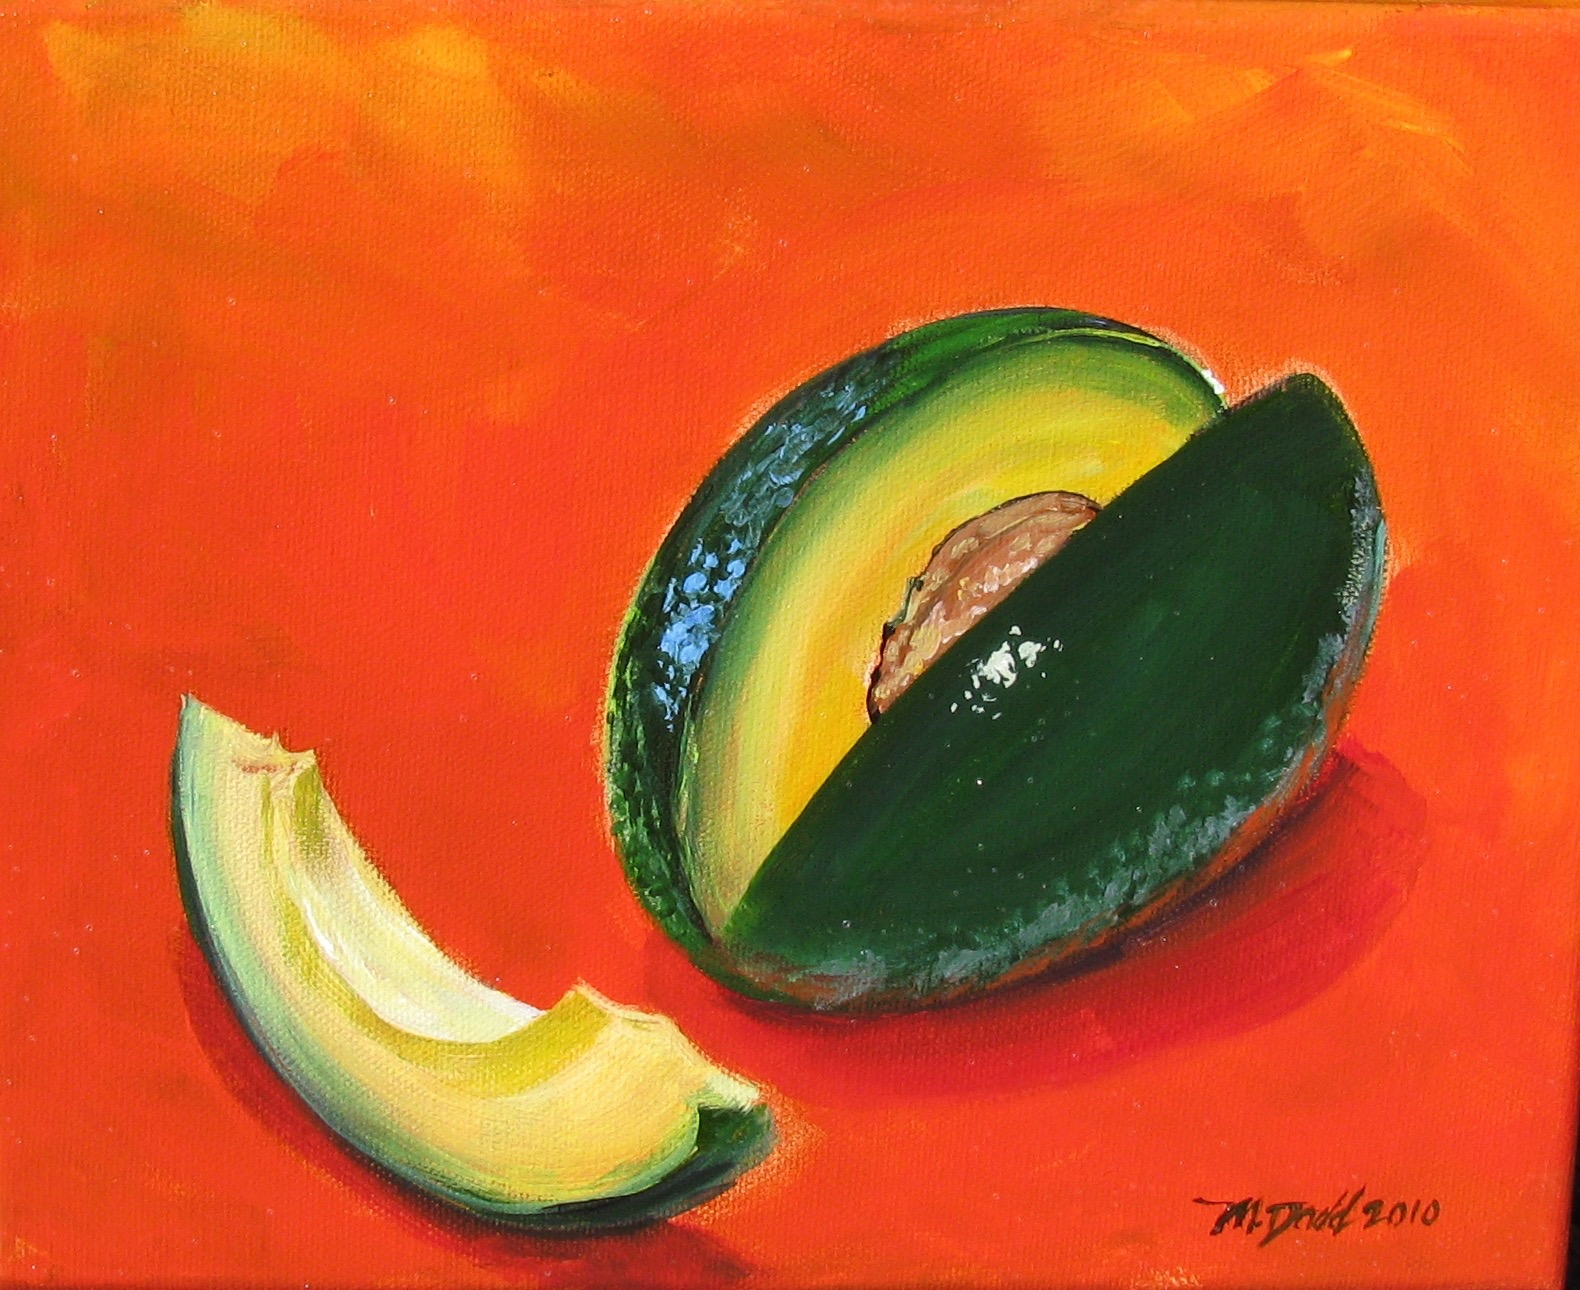 """Avocado on Cinnamon"" – Still Life Prints"